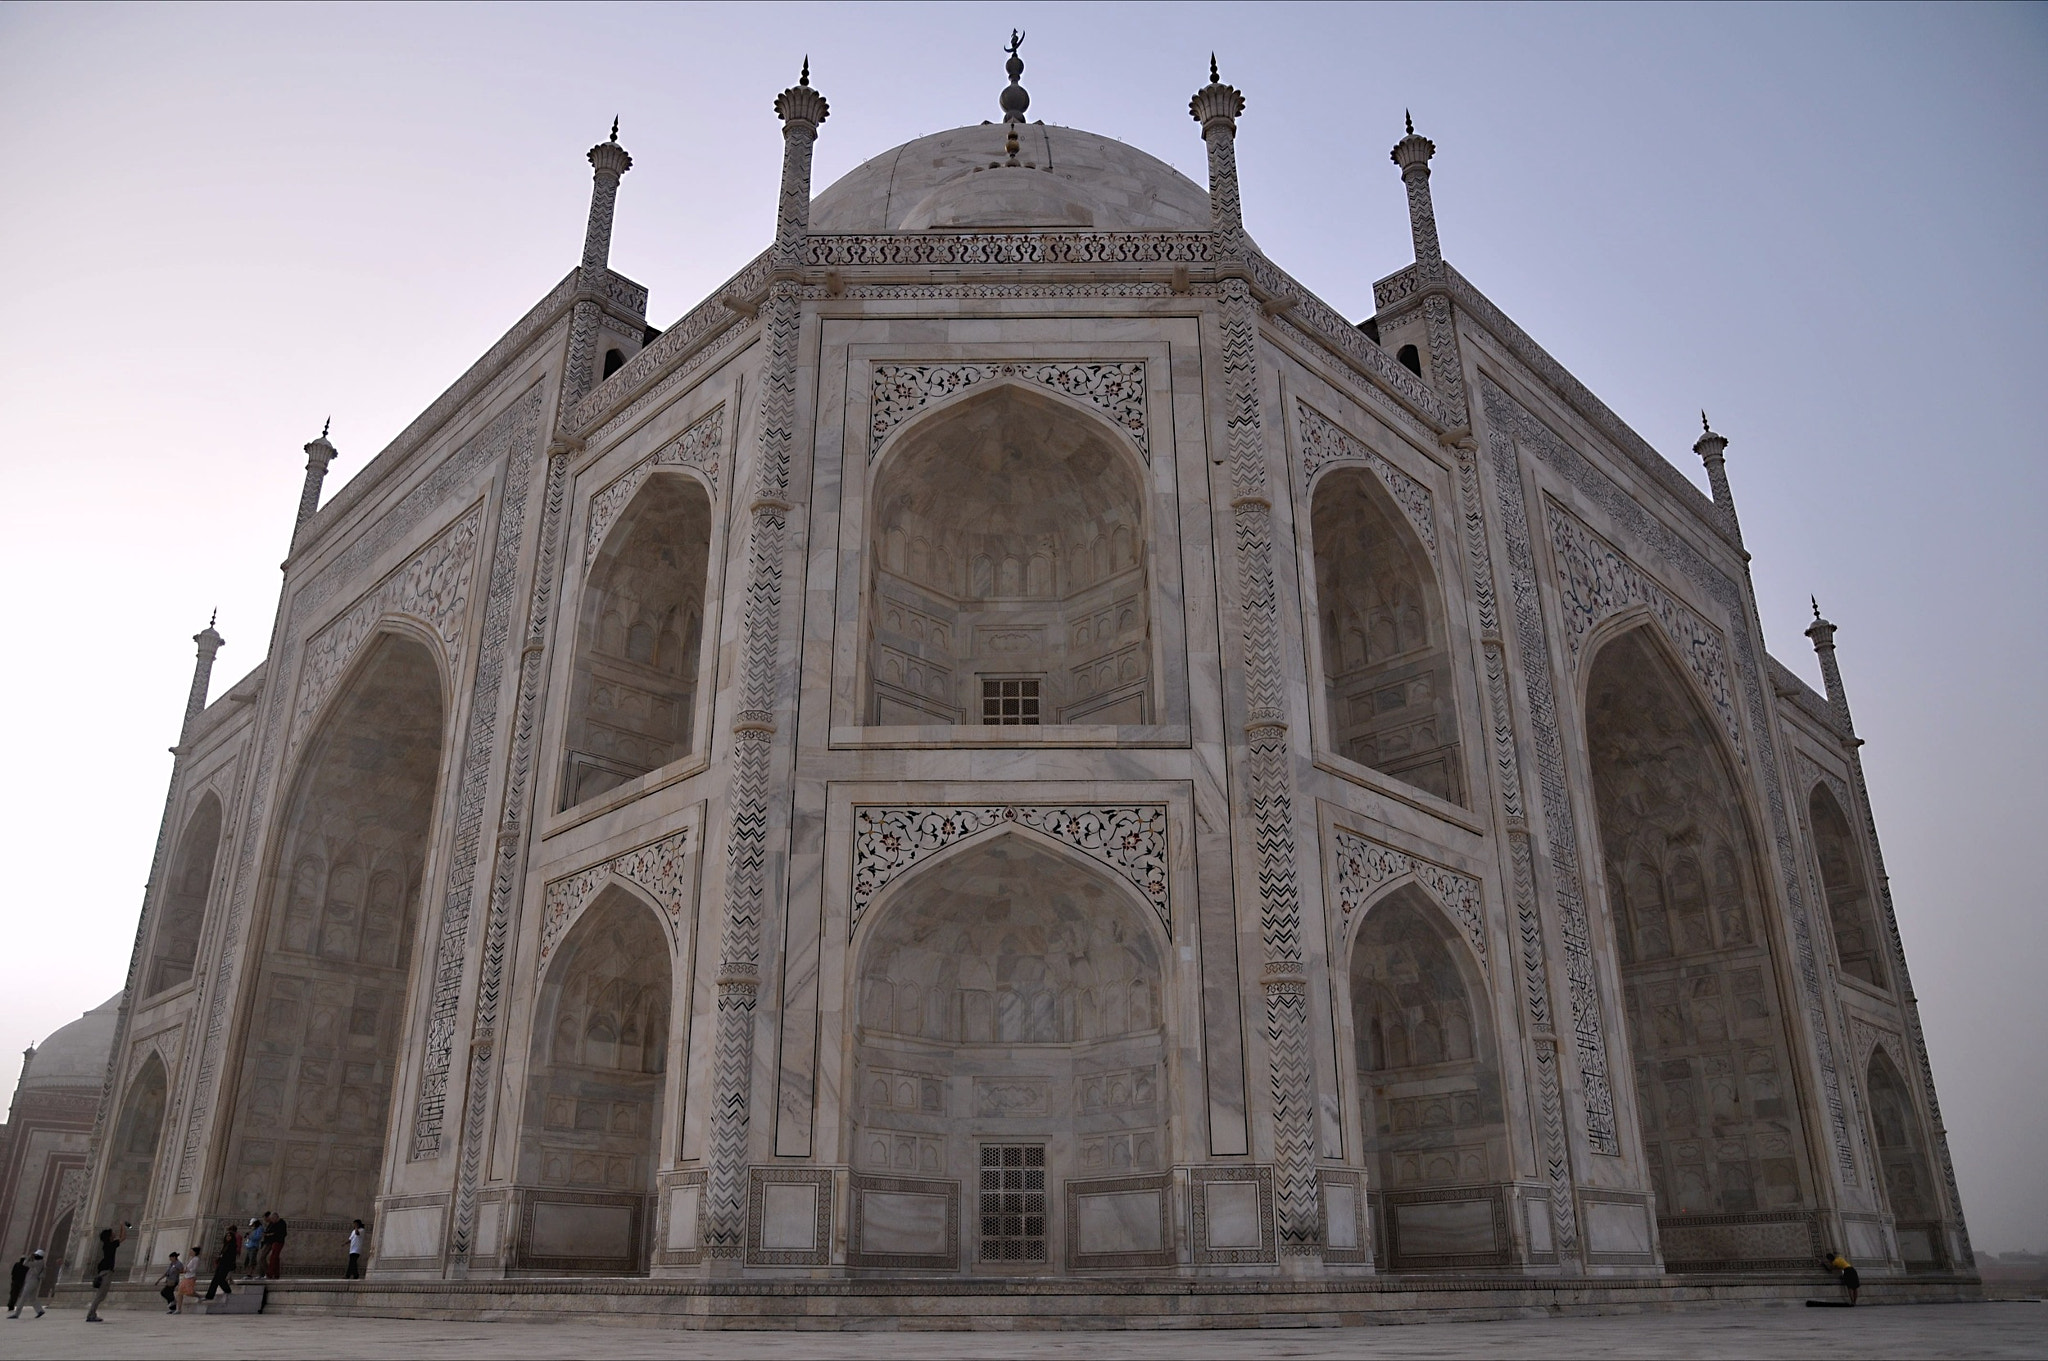 Photograph Taj Mahal by Chris Manning on 500px